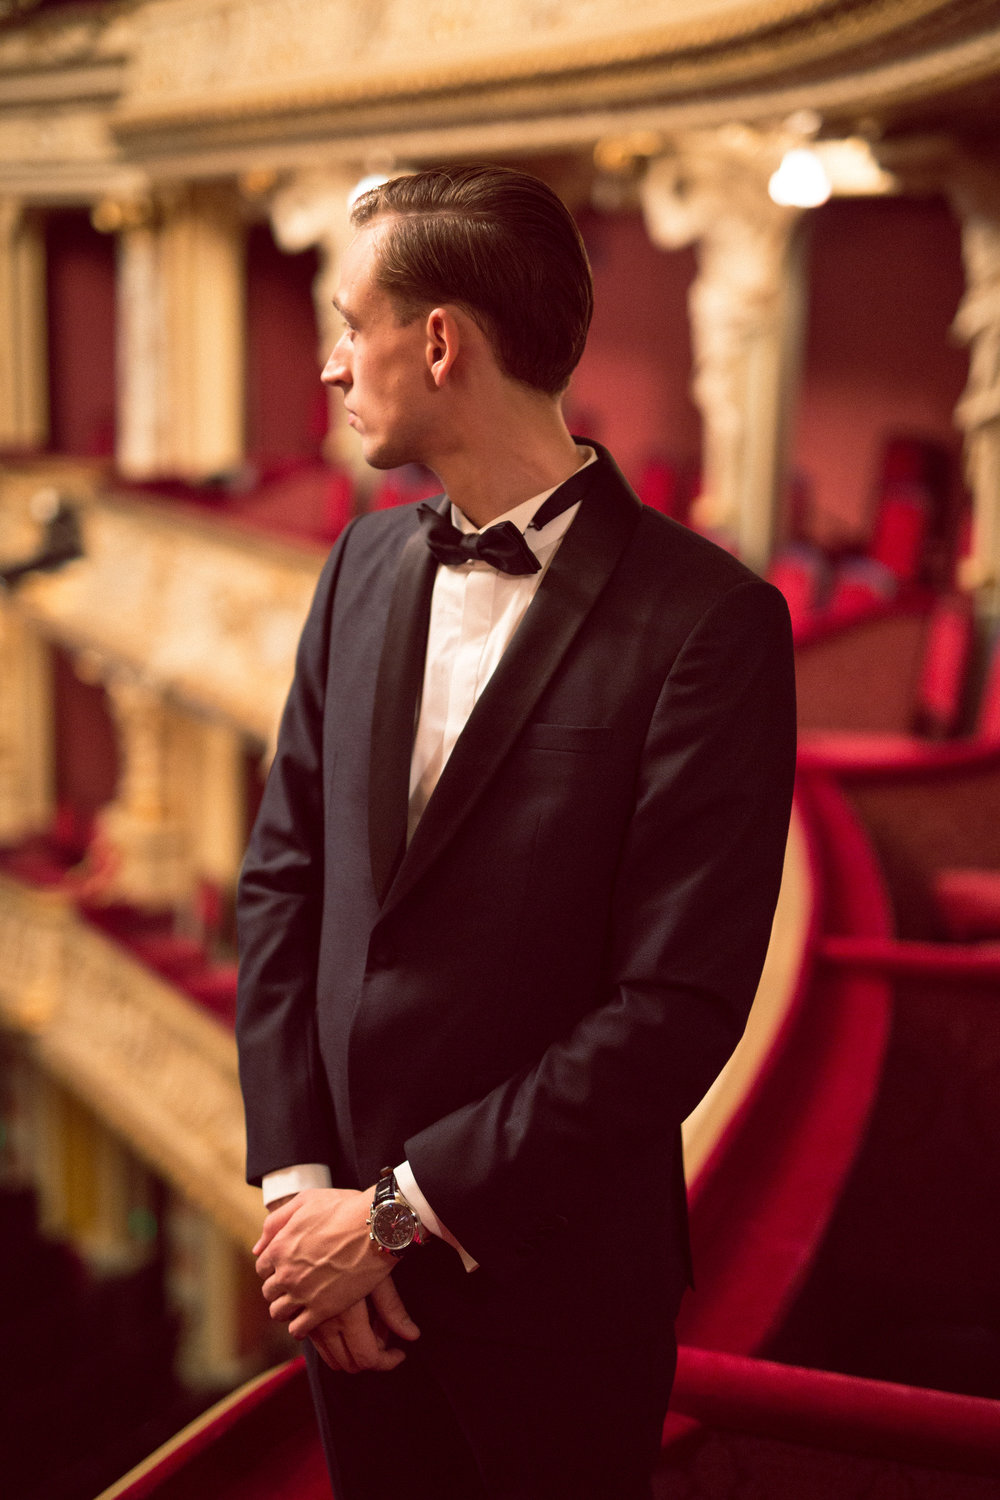 Moritz inside the Opera House, dressed in Z Zegna and wearing an IWC Portugieser Chronograph Classic watch